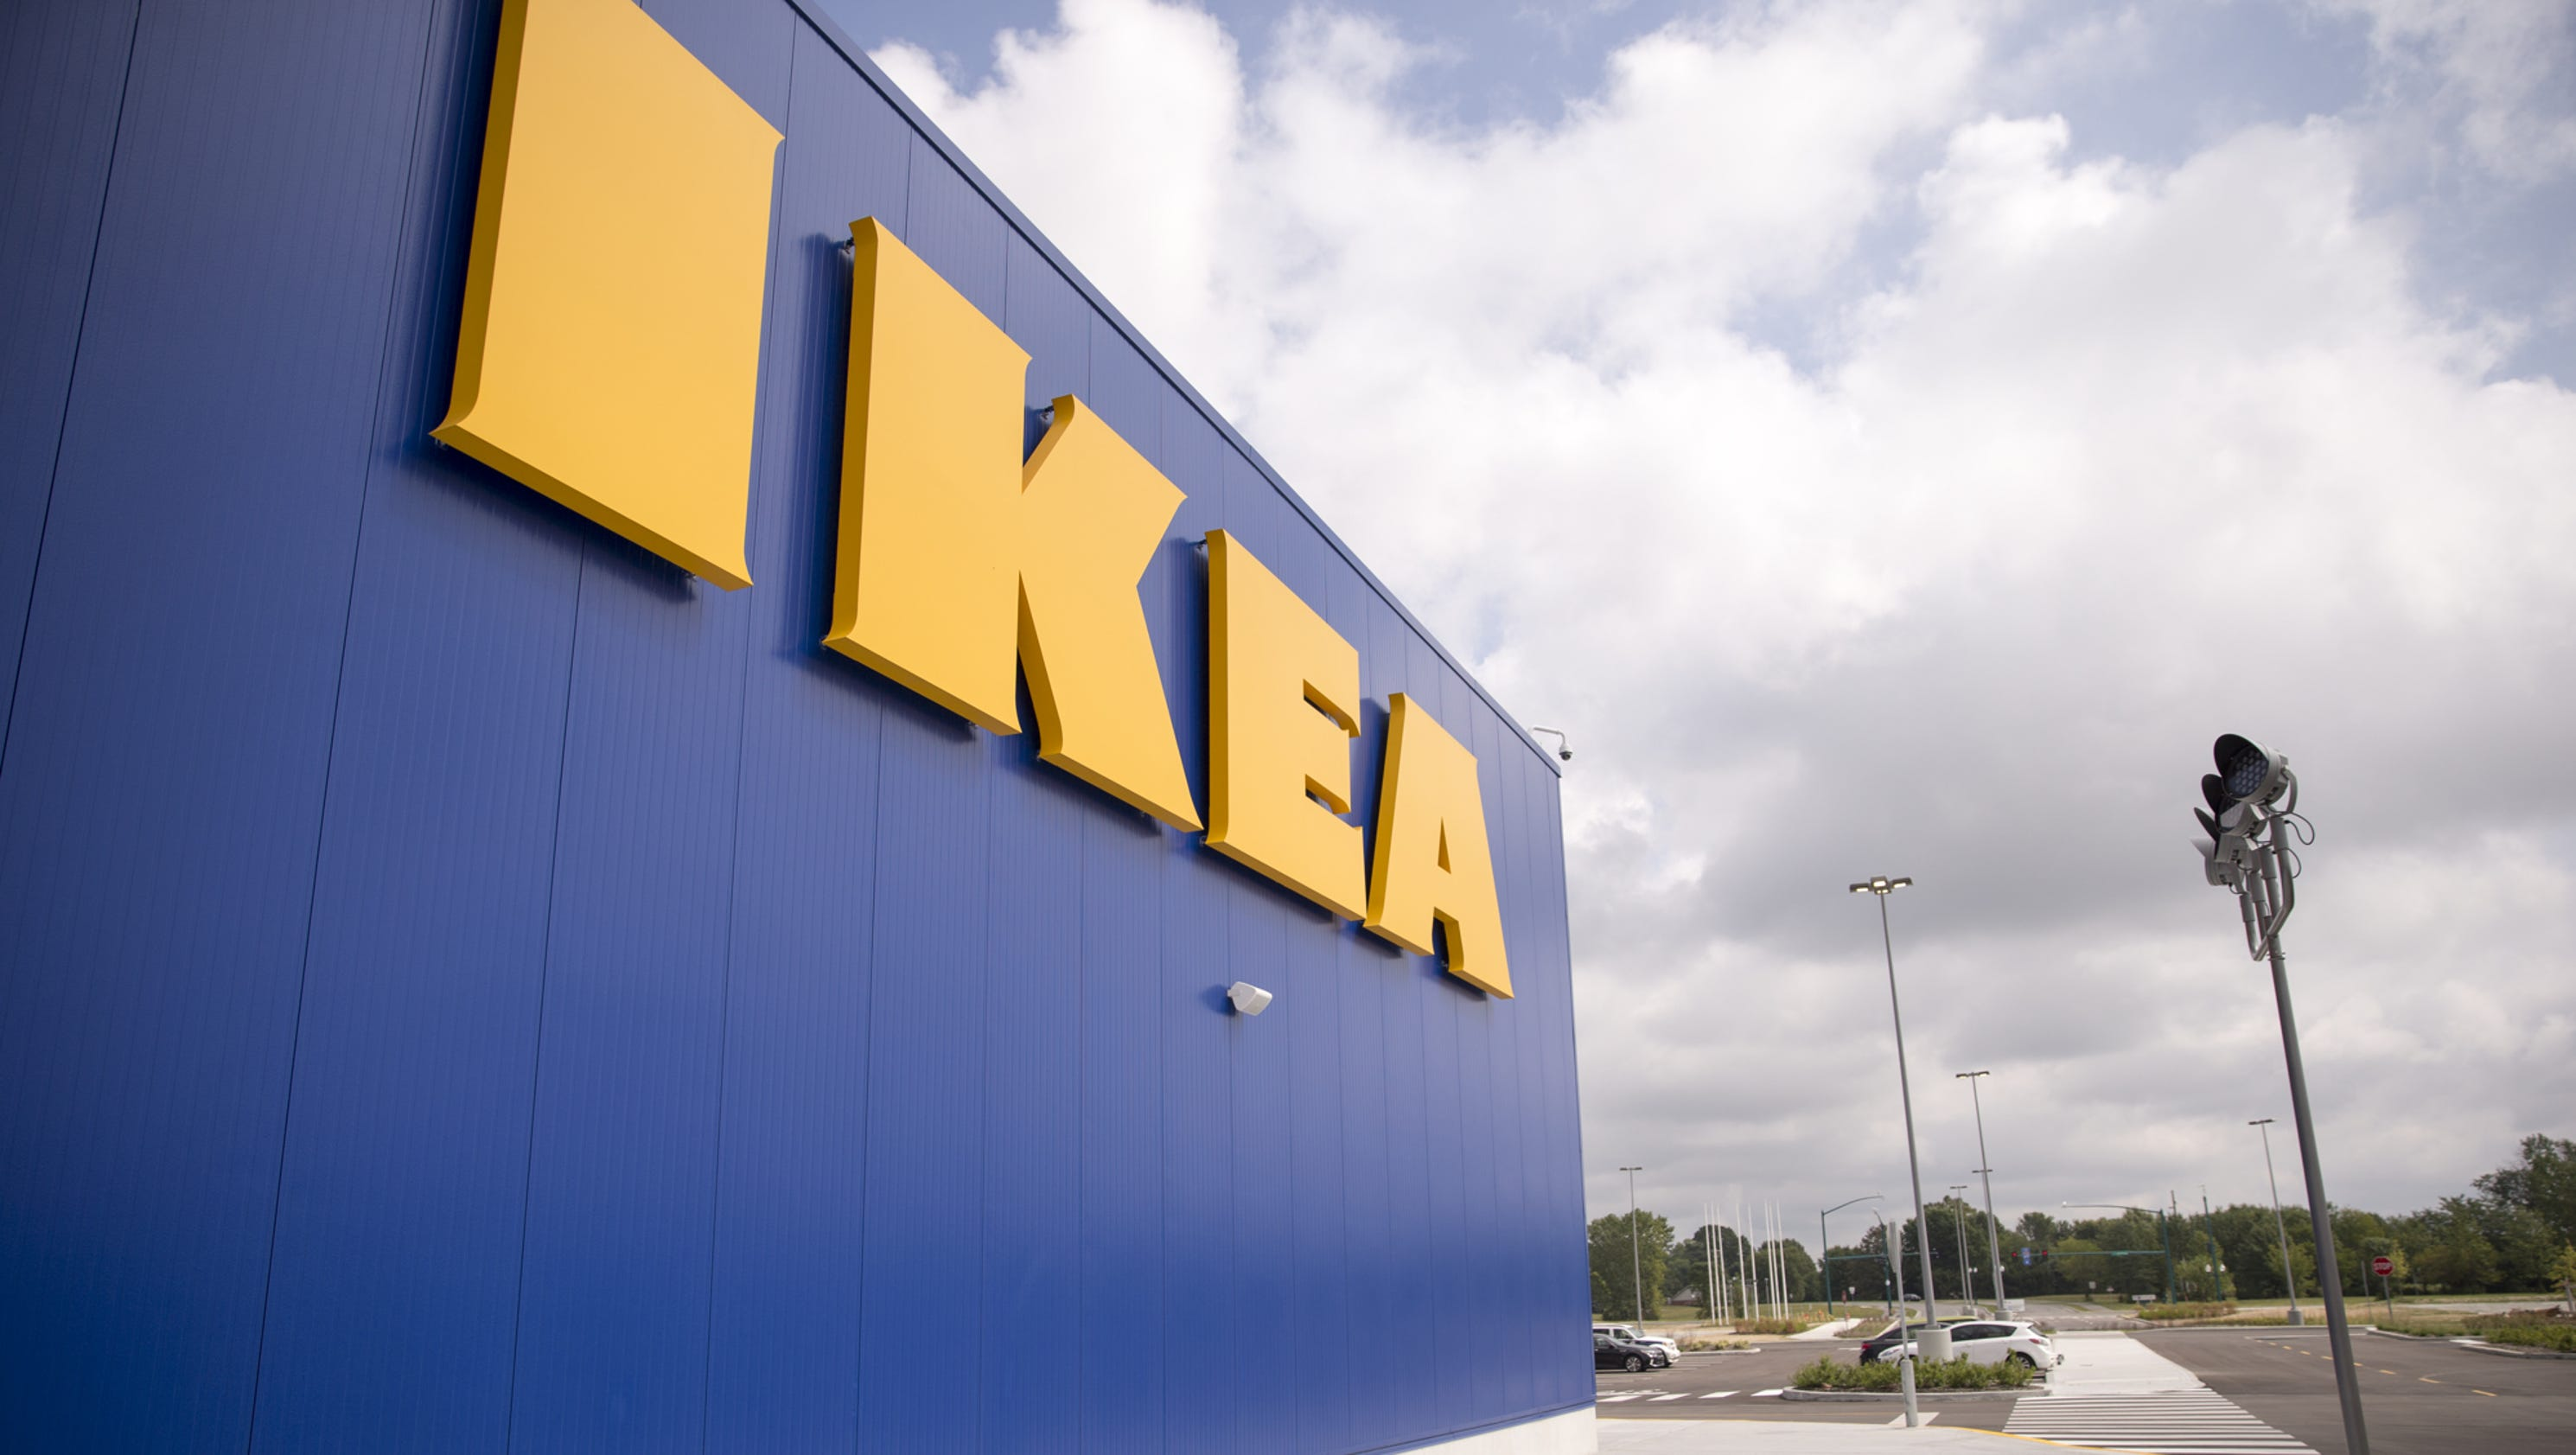 Fishers ikea donating beds to local refugee center for Ikea call center careers